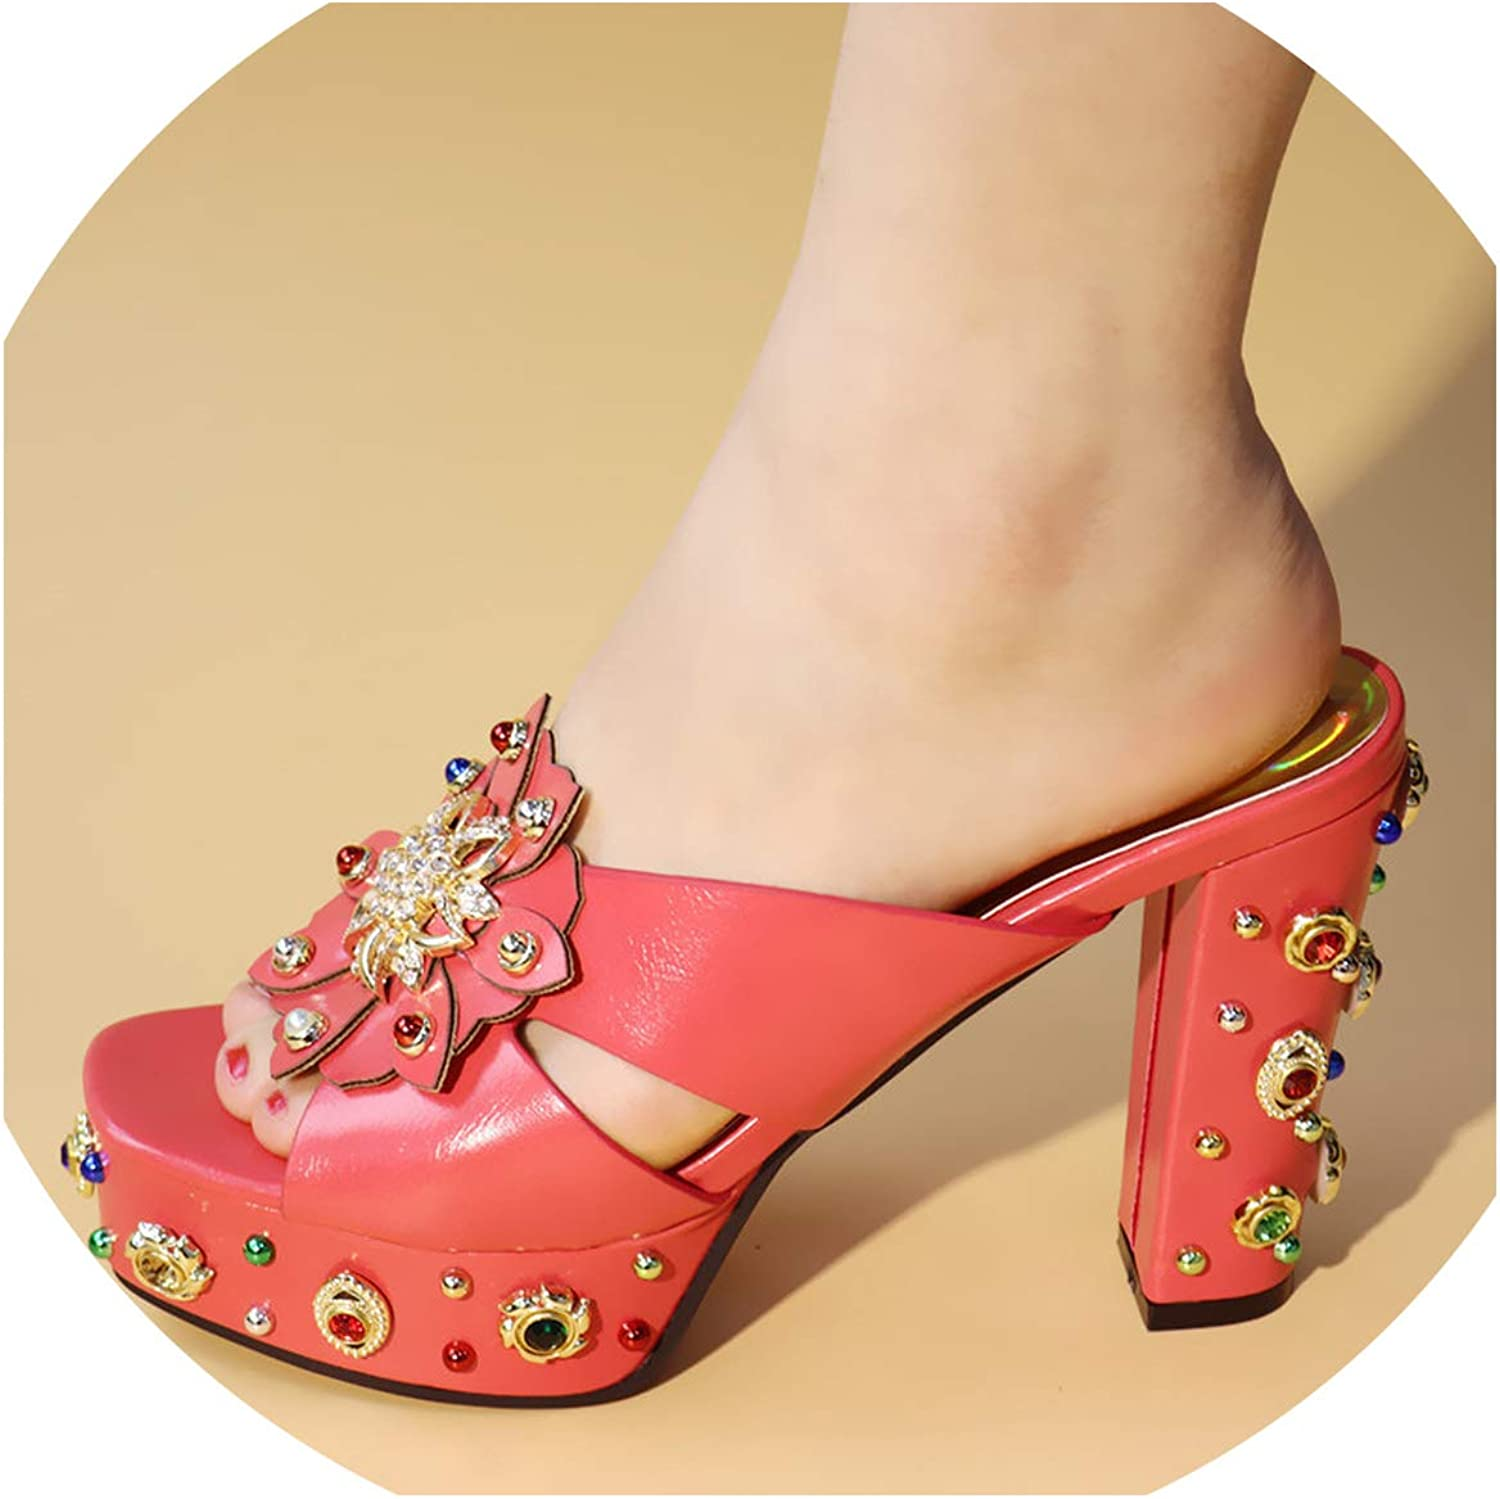 Sunny Doll Women shoes Decorated with Rhinestone  Women shoes for Party Women Summer Sexy High Heels Pumps